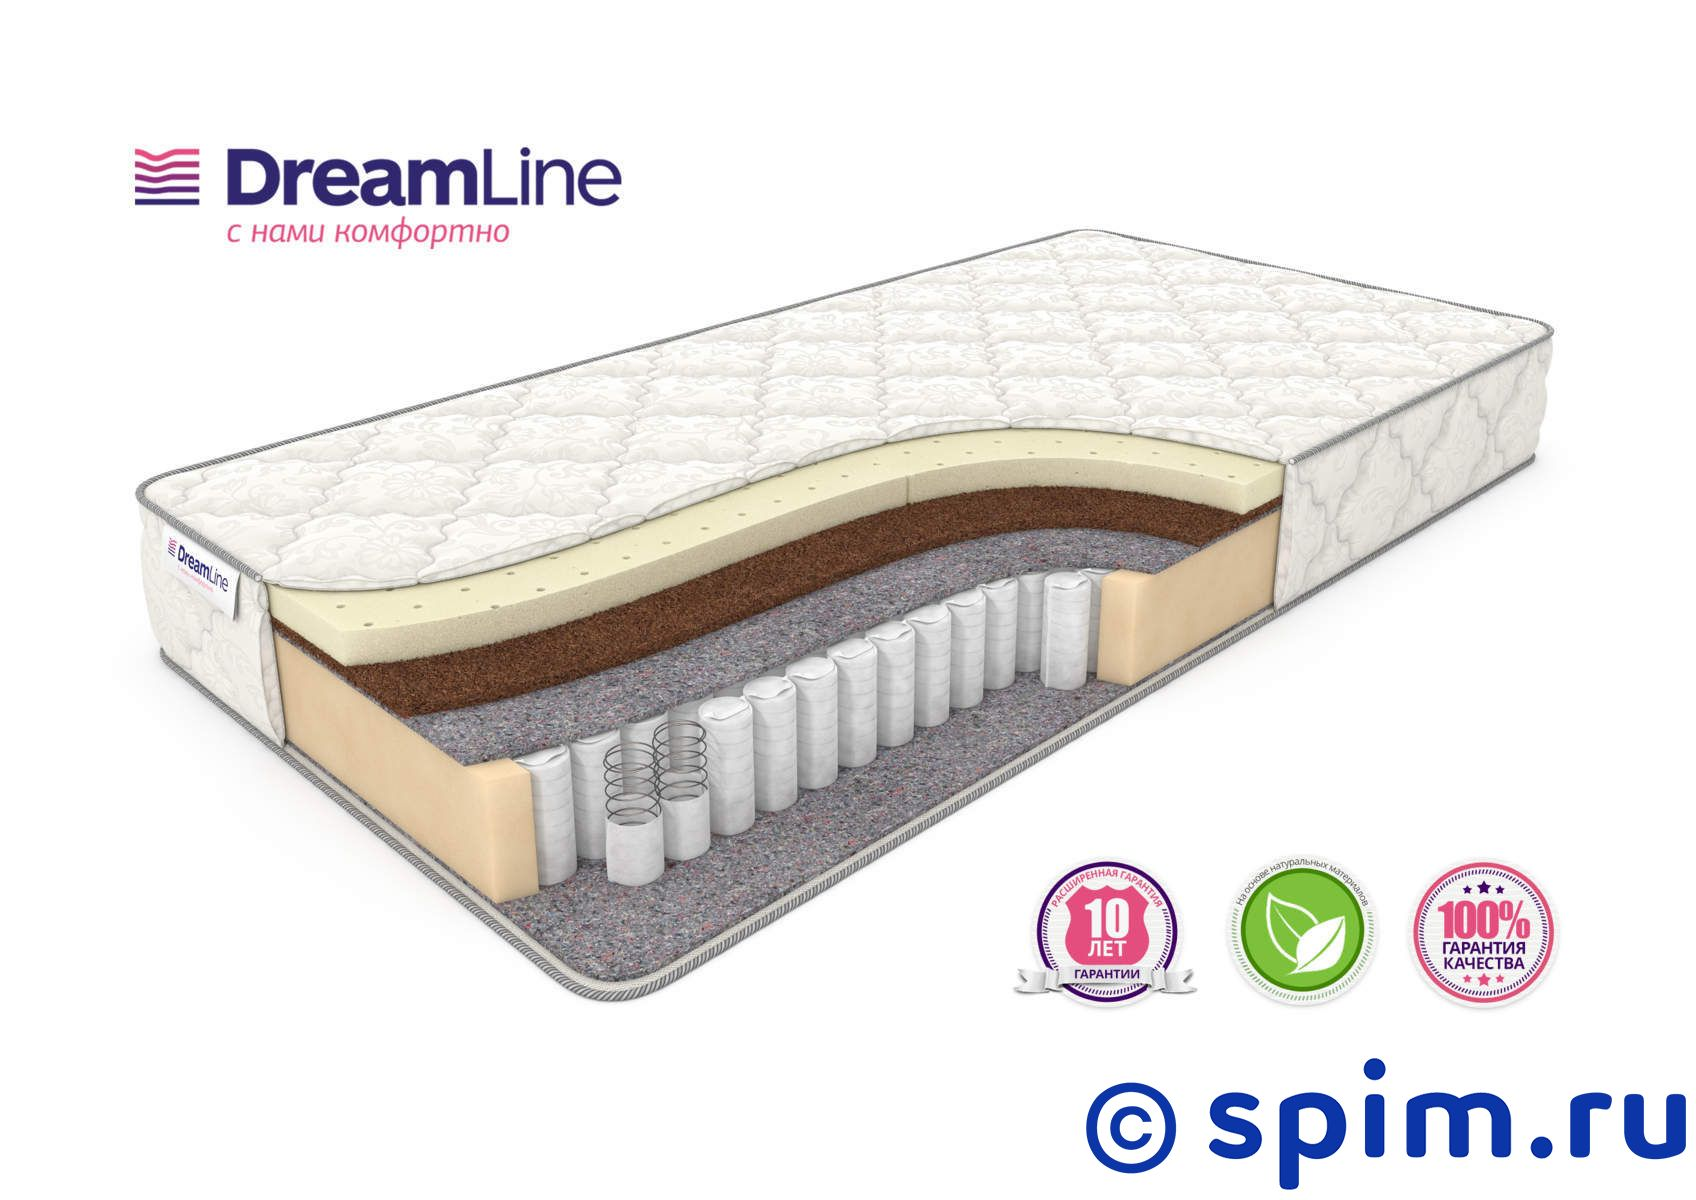 ������ DreamLine Single SleepDream Medium Tfk 80�190 �� - DreamLine�������/DreamLine/������� DreamLine Single<br>������������� ������ ������� ��������� �� ����������� �������� TFK (256 ��/�2), � ����������� �� ������ � ������������ �������.<br>����� �� ���������� ��������.<br>������: 20 ��.<br>��������: �� 110 ��. ������ �������� ����� �������� ������ ���: 80 x 190 ��<br><br>���: ���������<br>������� �������: ���� ������� �������<br>��������� 1 �������: �������<br>������ 1 �������: �����<br>������ 1 �������: ������<br>���-�� ��� ���������: 0<br>��� ������: �����������<br>������ �� ��.�: 256<br>������������ ��� �� �������� ����� ��: 110<br>������ ��: 20<br>��� �����: �������<br>������ �� �����: ���<br>����/����: ���<br>��������� ��������: ���<br>�������: ���<br>������ �������������: ������<br>������: ������ DreamLine Single SleepDream Medium Tfk 80�190 �� �������� ����� �������� ������ ���<br>������ ��: 80<br>����� ��: 190<br>�������: Single